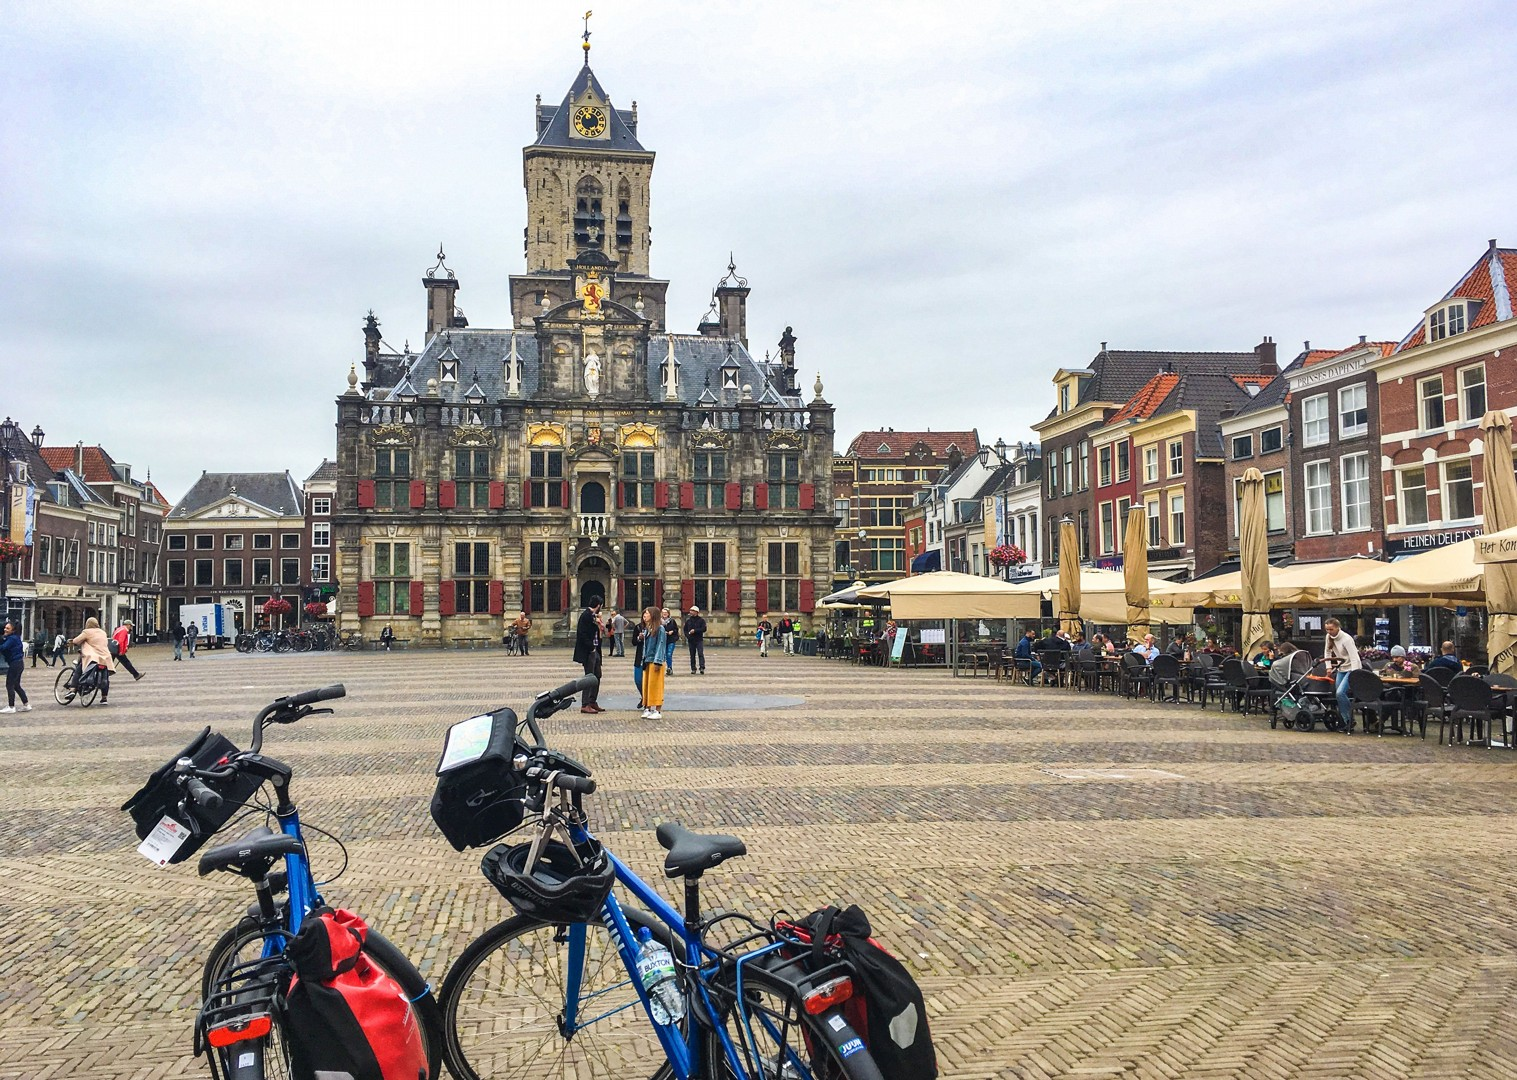 cycling-delft-in-holland-family-holiday-saddle-skedaddle-cities-and-beaches-of-south.jpg - Holland - Cities and Beaches of the South - Self-Guided Family Cycling Holiday - Family Cycling